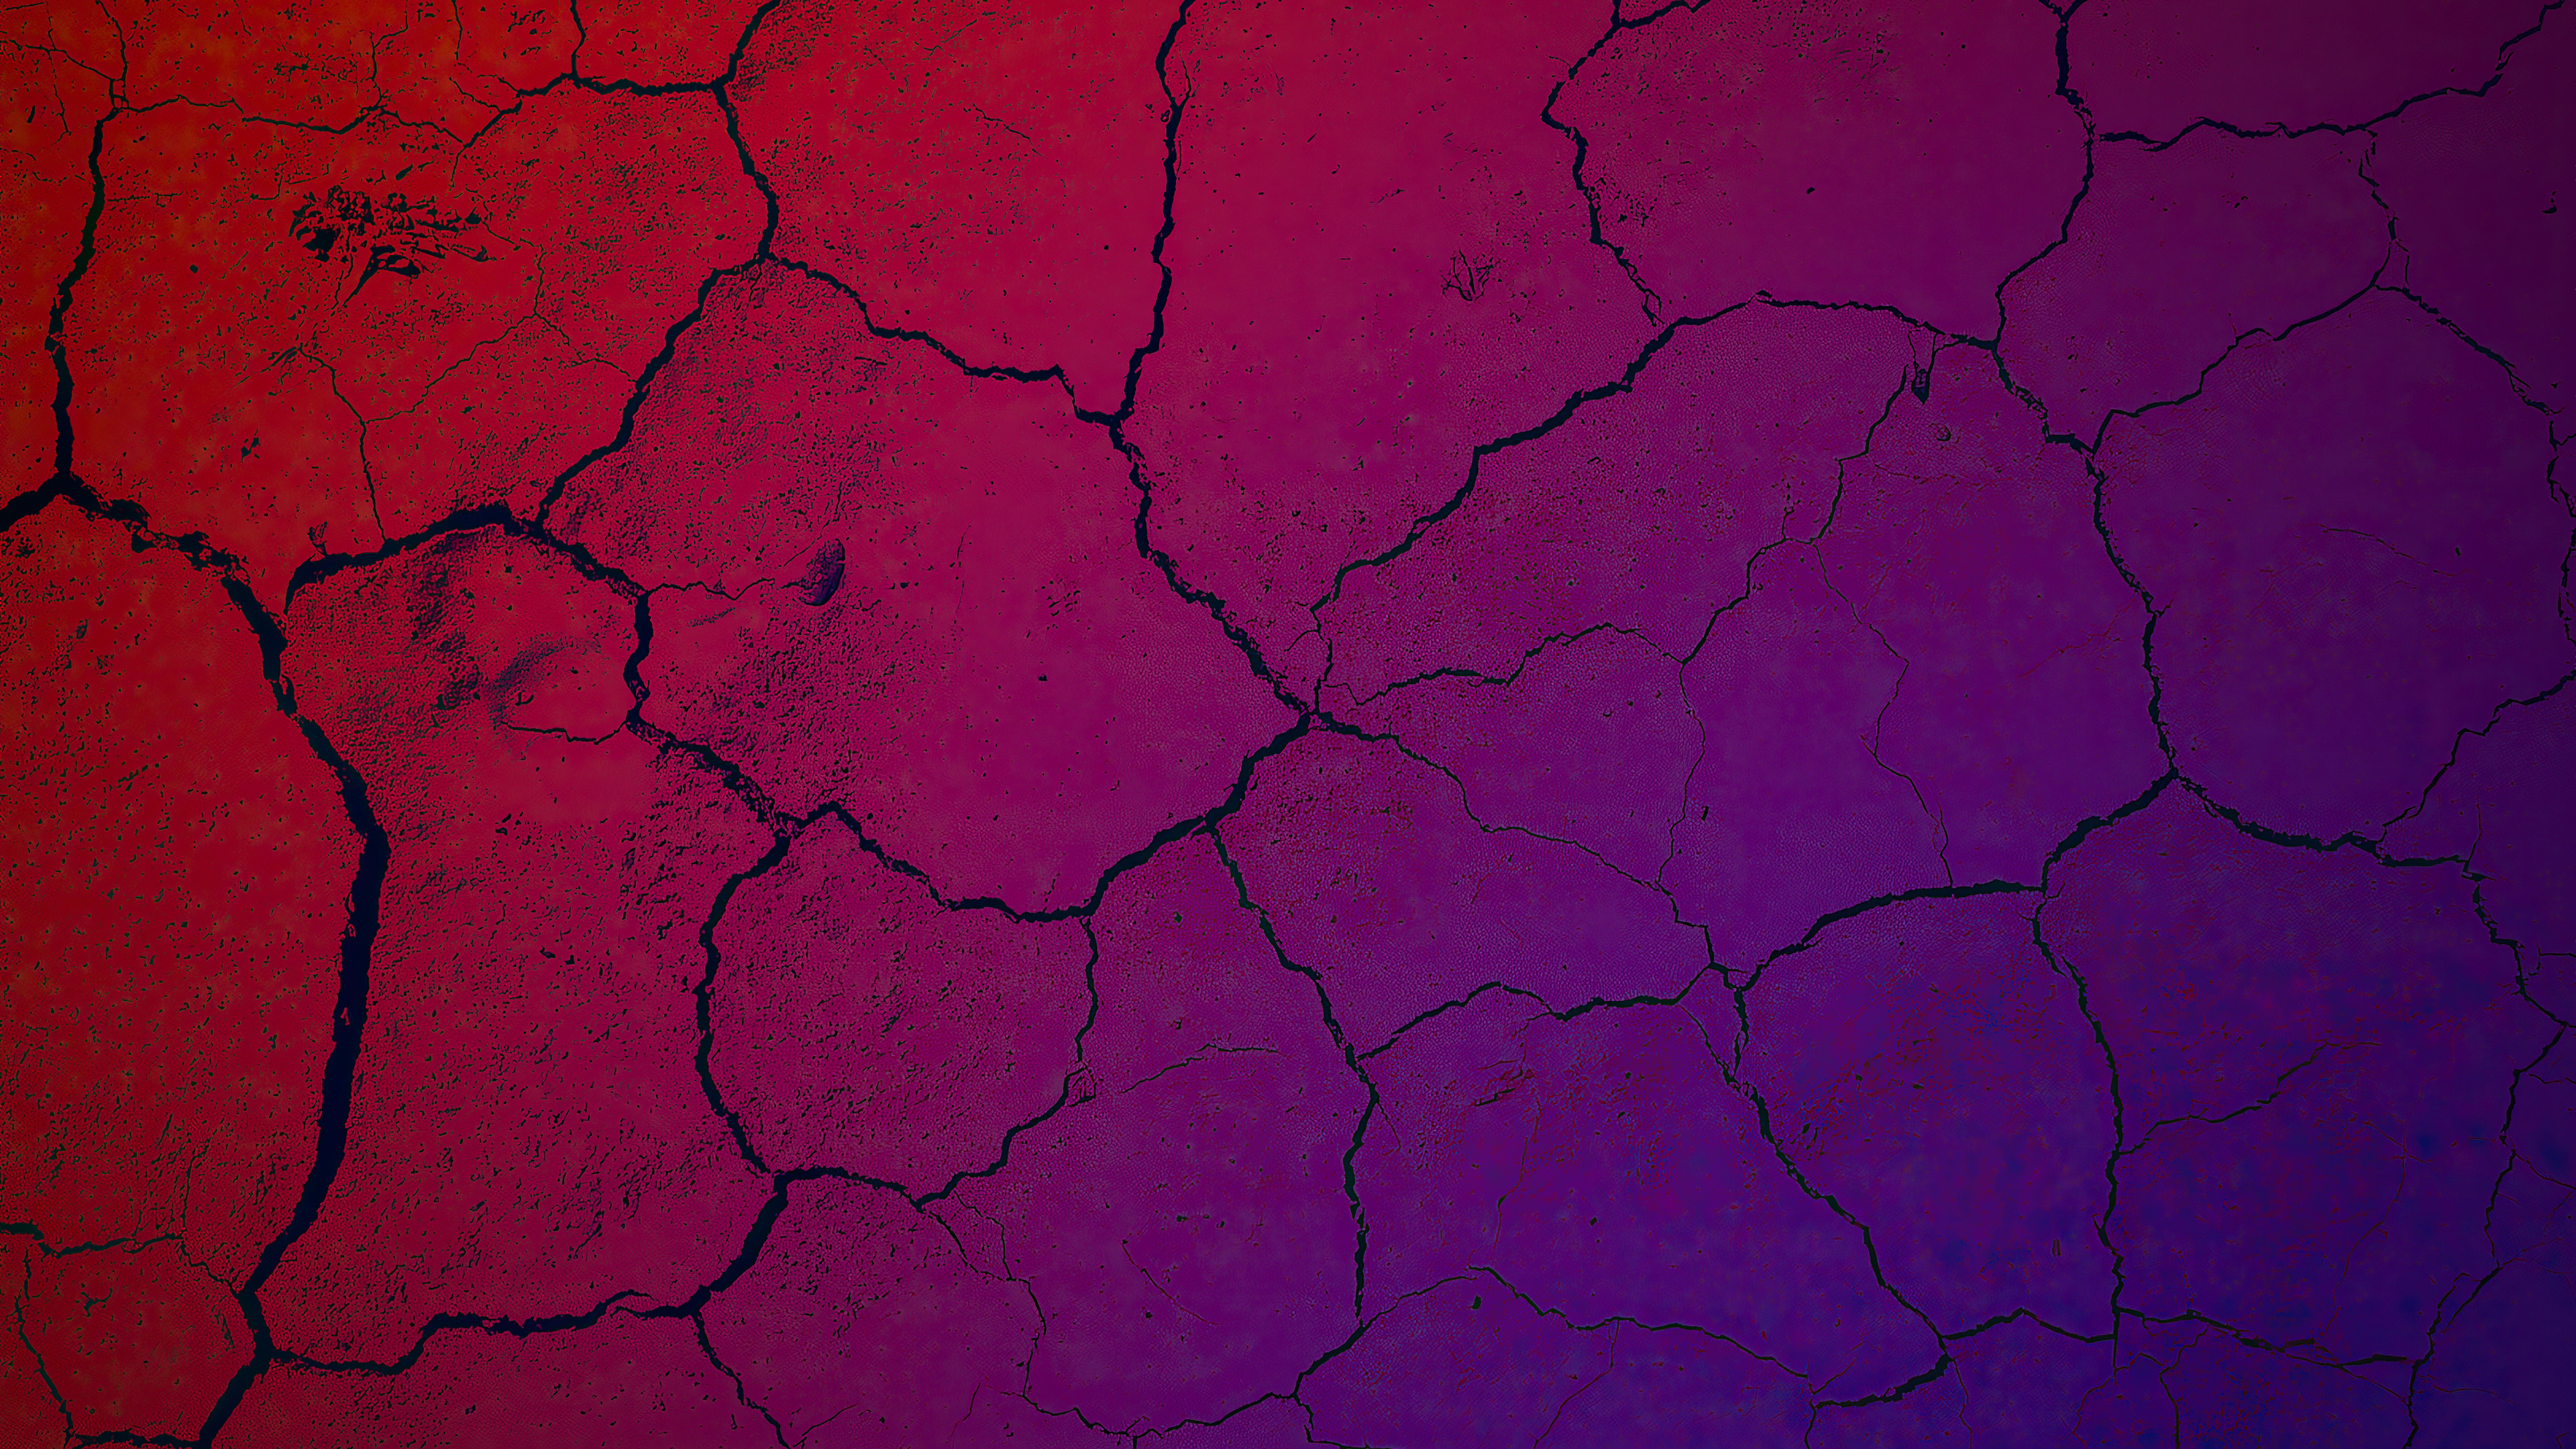 drought abstract 4k 1602441883 - Drought Abstract 4k - Drought Abstract 4k wallpapers